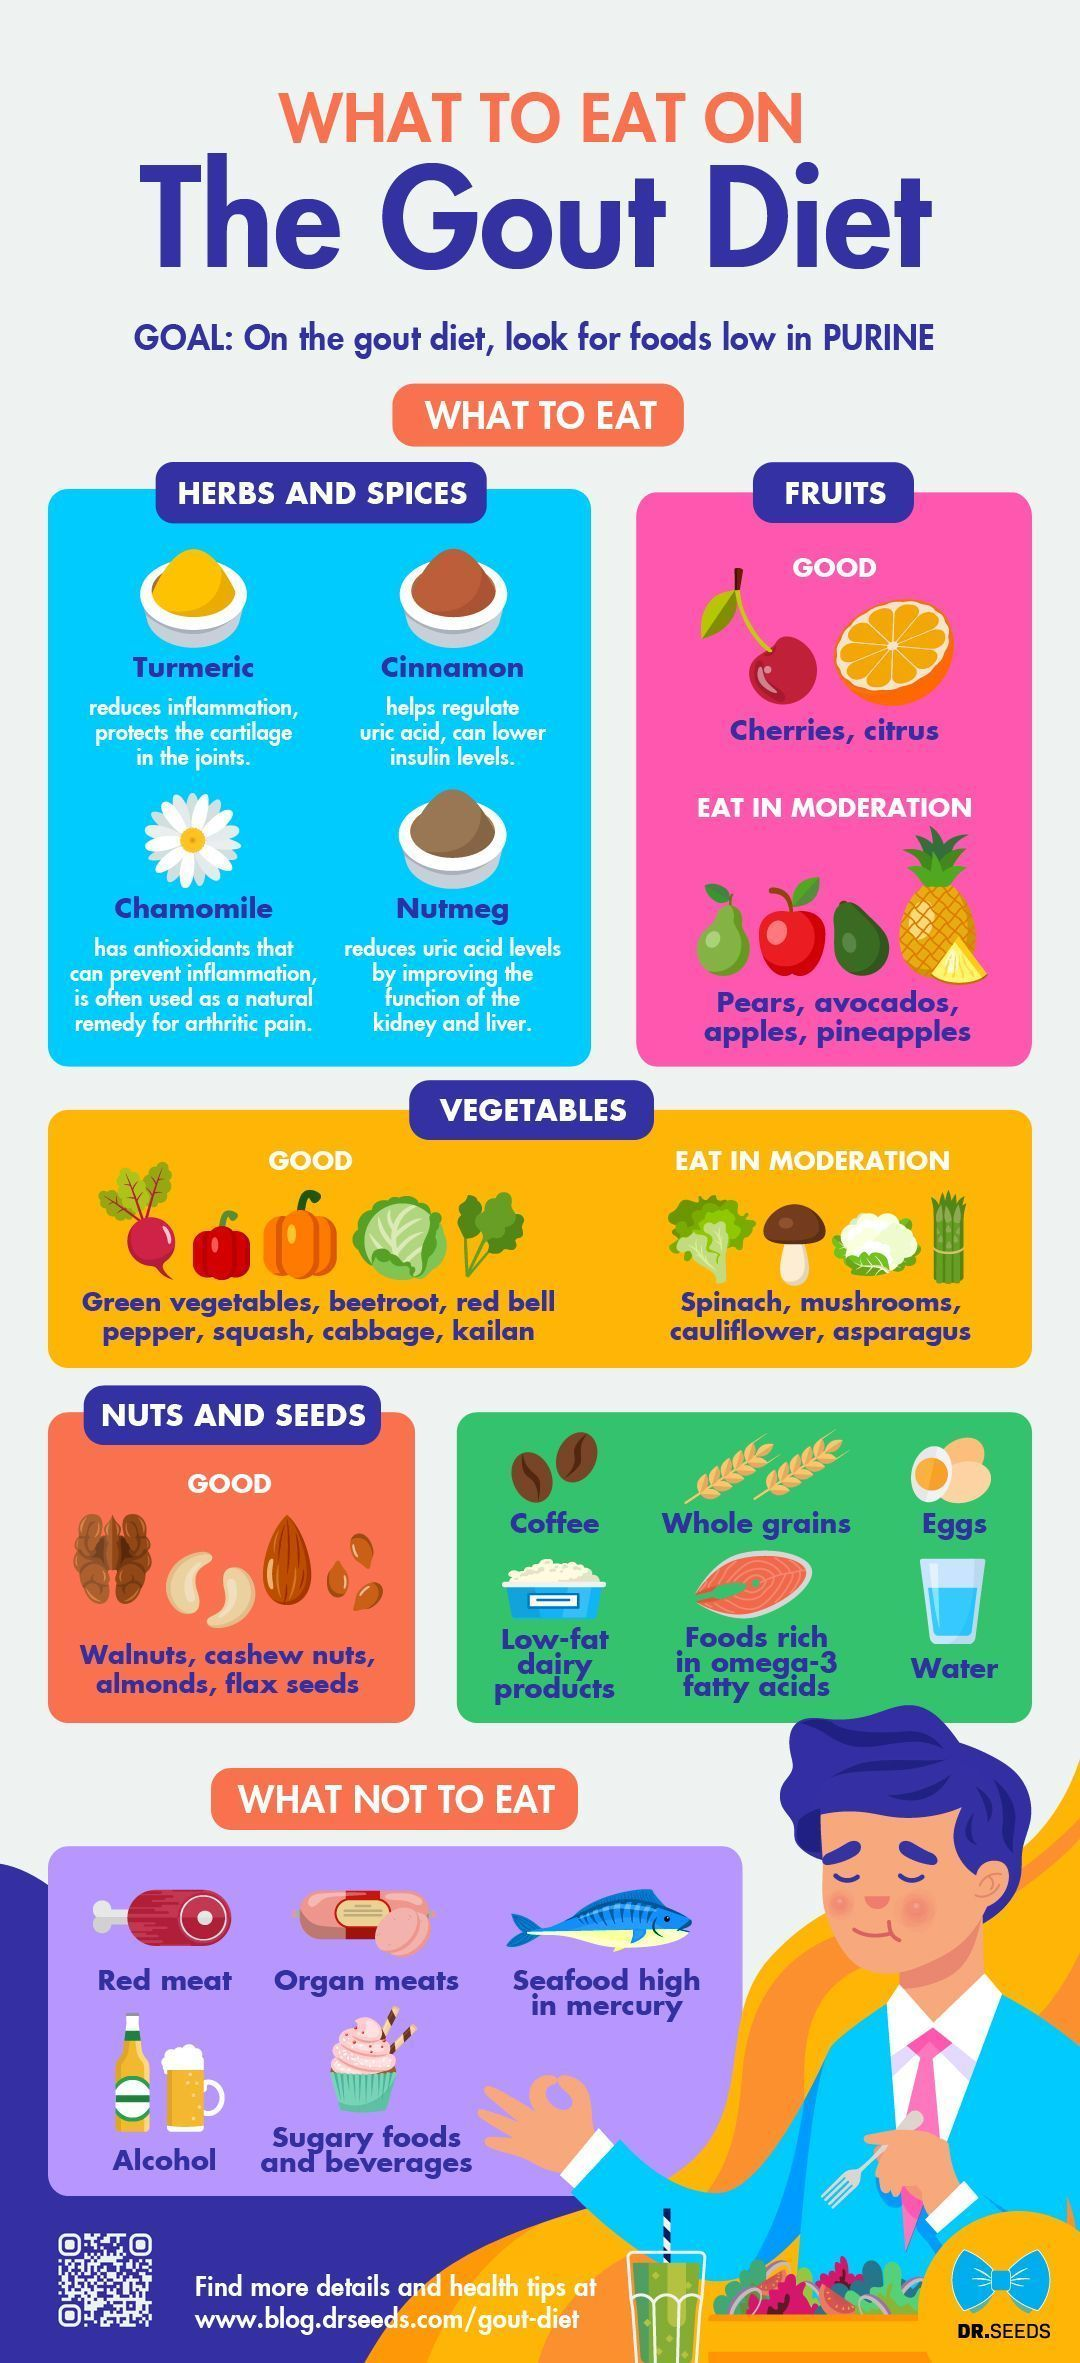 Gout Diet What To Eat And What Not To Eat A Gout Diet Just Like Diets For Other Health Issues Has A Set Of Recommen In 2020 Gout Diet Gout